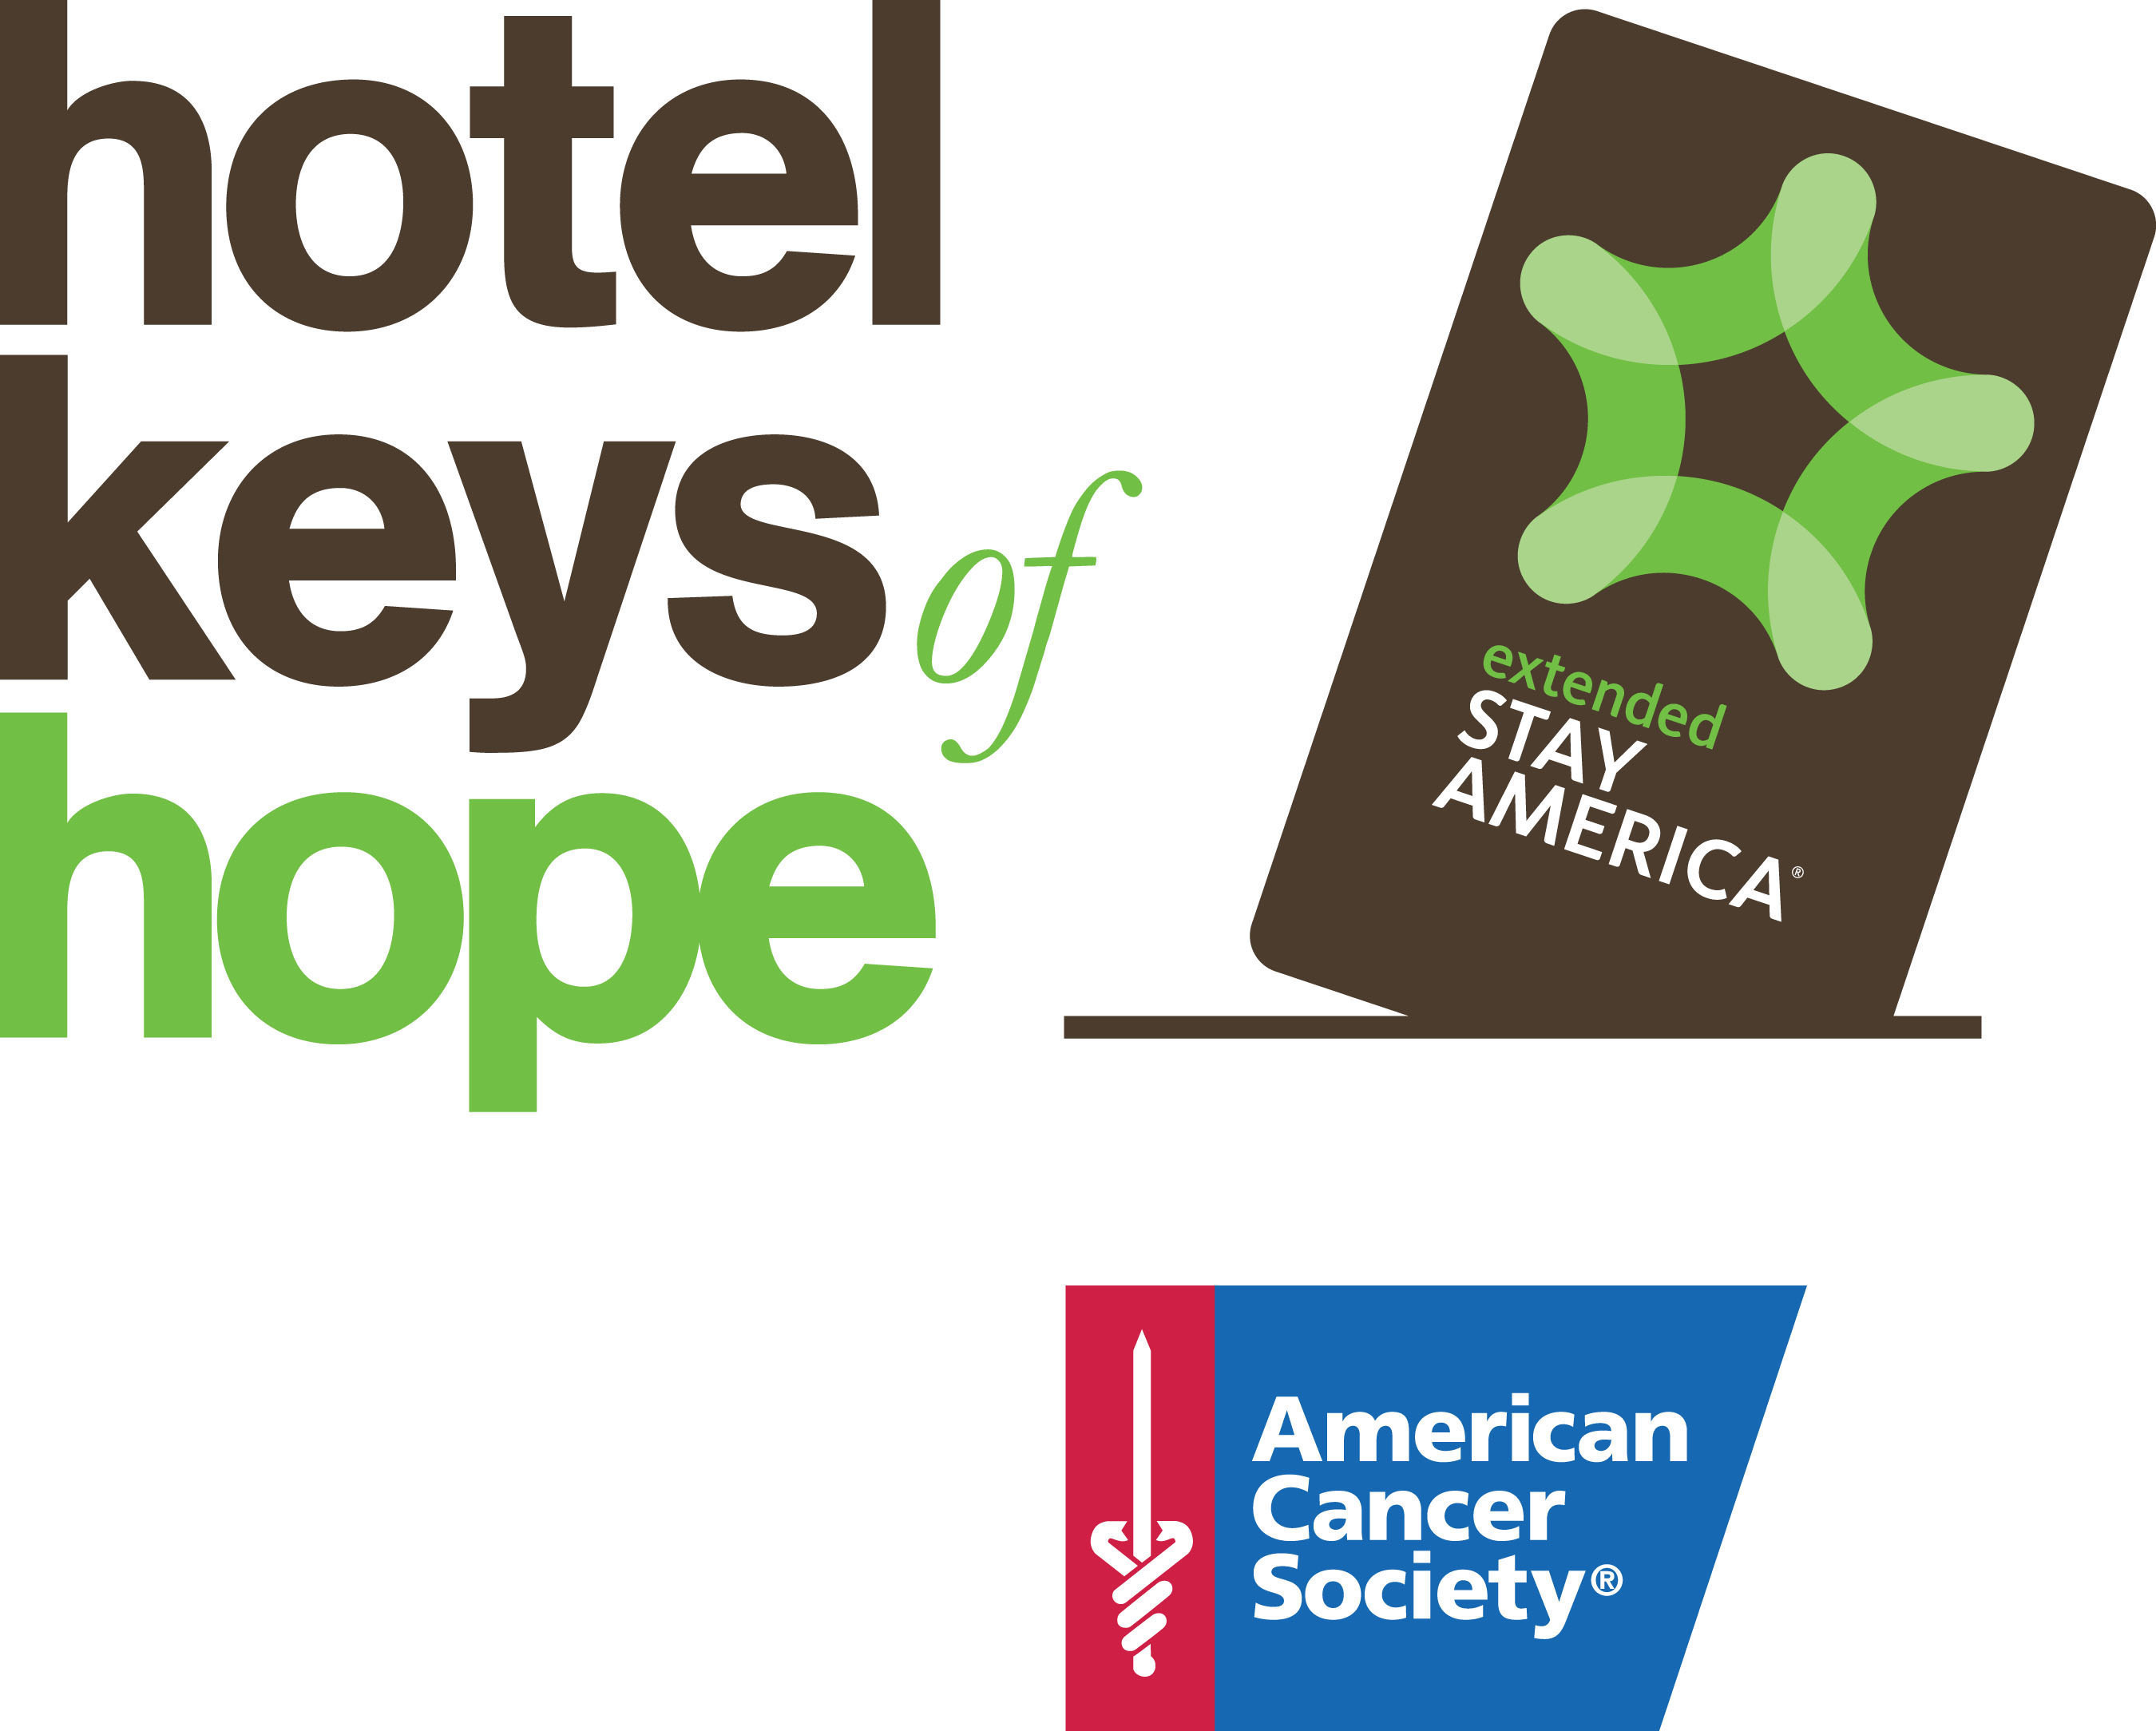 Extended Stay America and the American Cancer Society renew their unprecedented multi-year partnership and flagship room donation program, Hotel Keys of Hope(TM), helping to alleviate one of the largest barriers for cancer treatment - lodging cost during treatment. The hotel brand commits a record-breaking 100,000 rooms over the next two years, providing lodging support to a targeted 15,000 cancer patients.